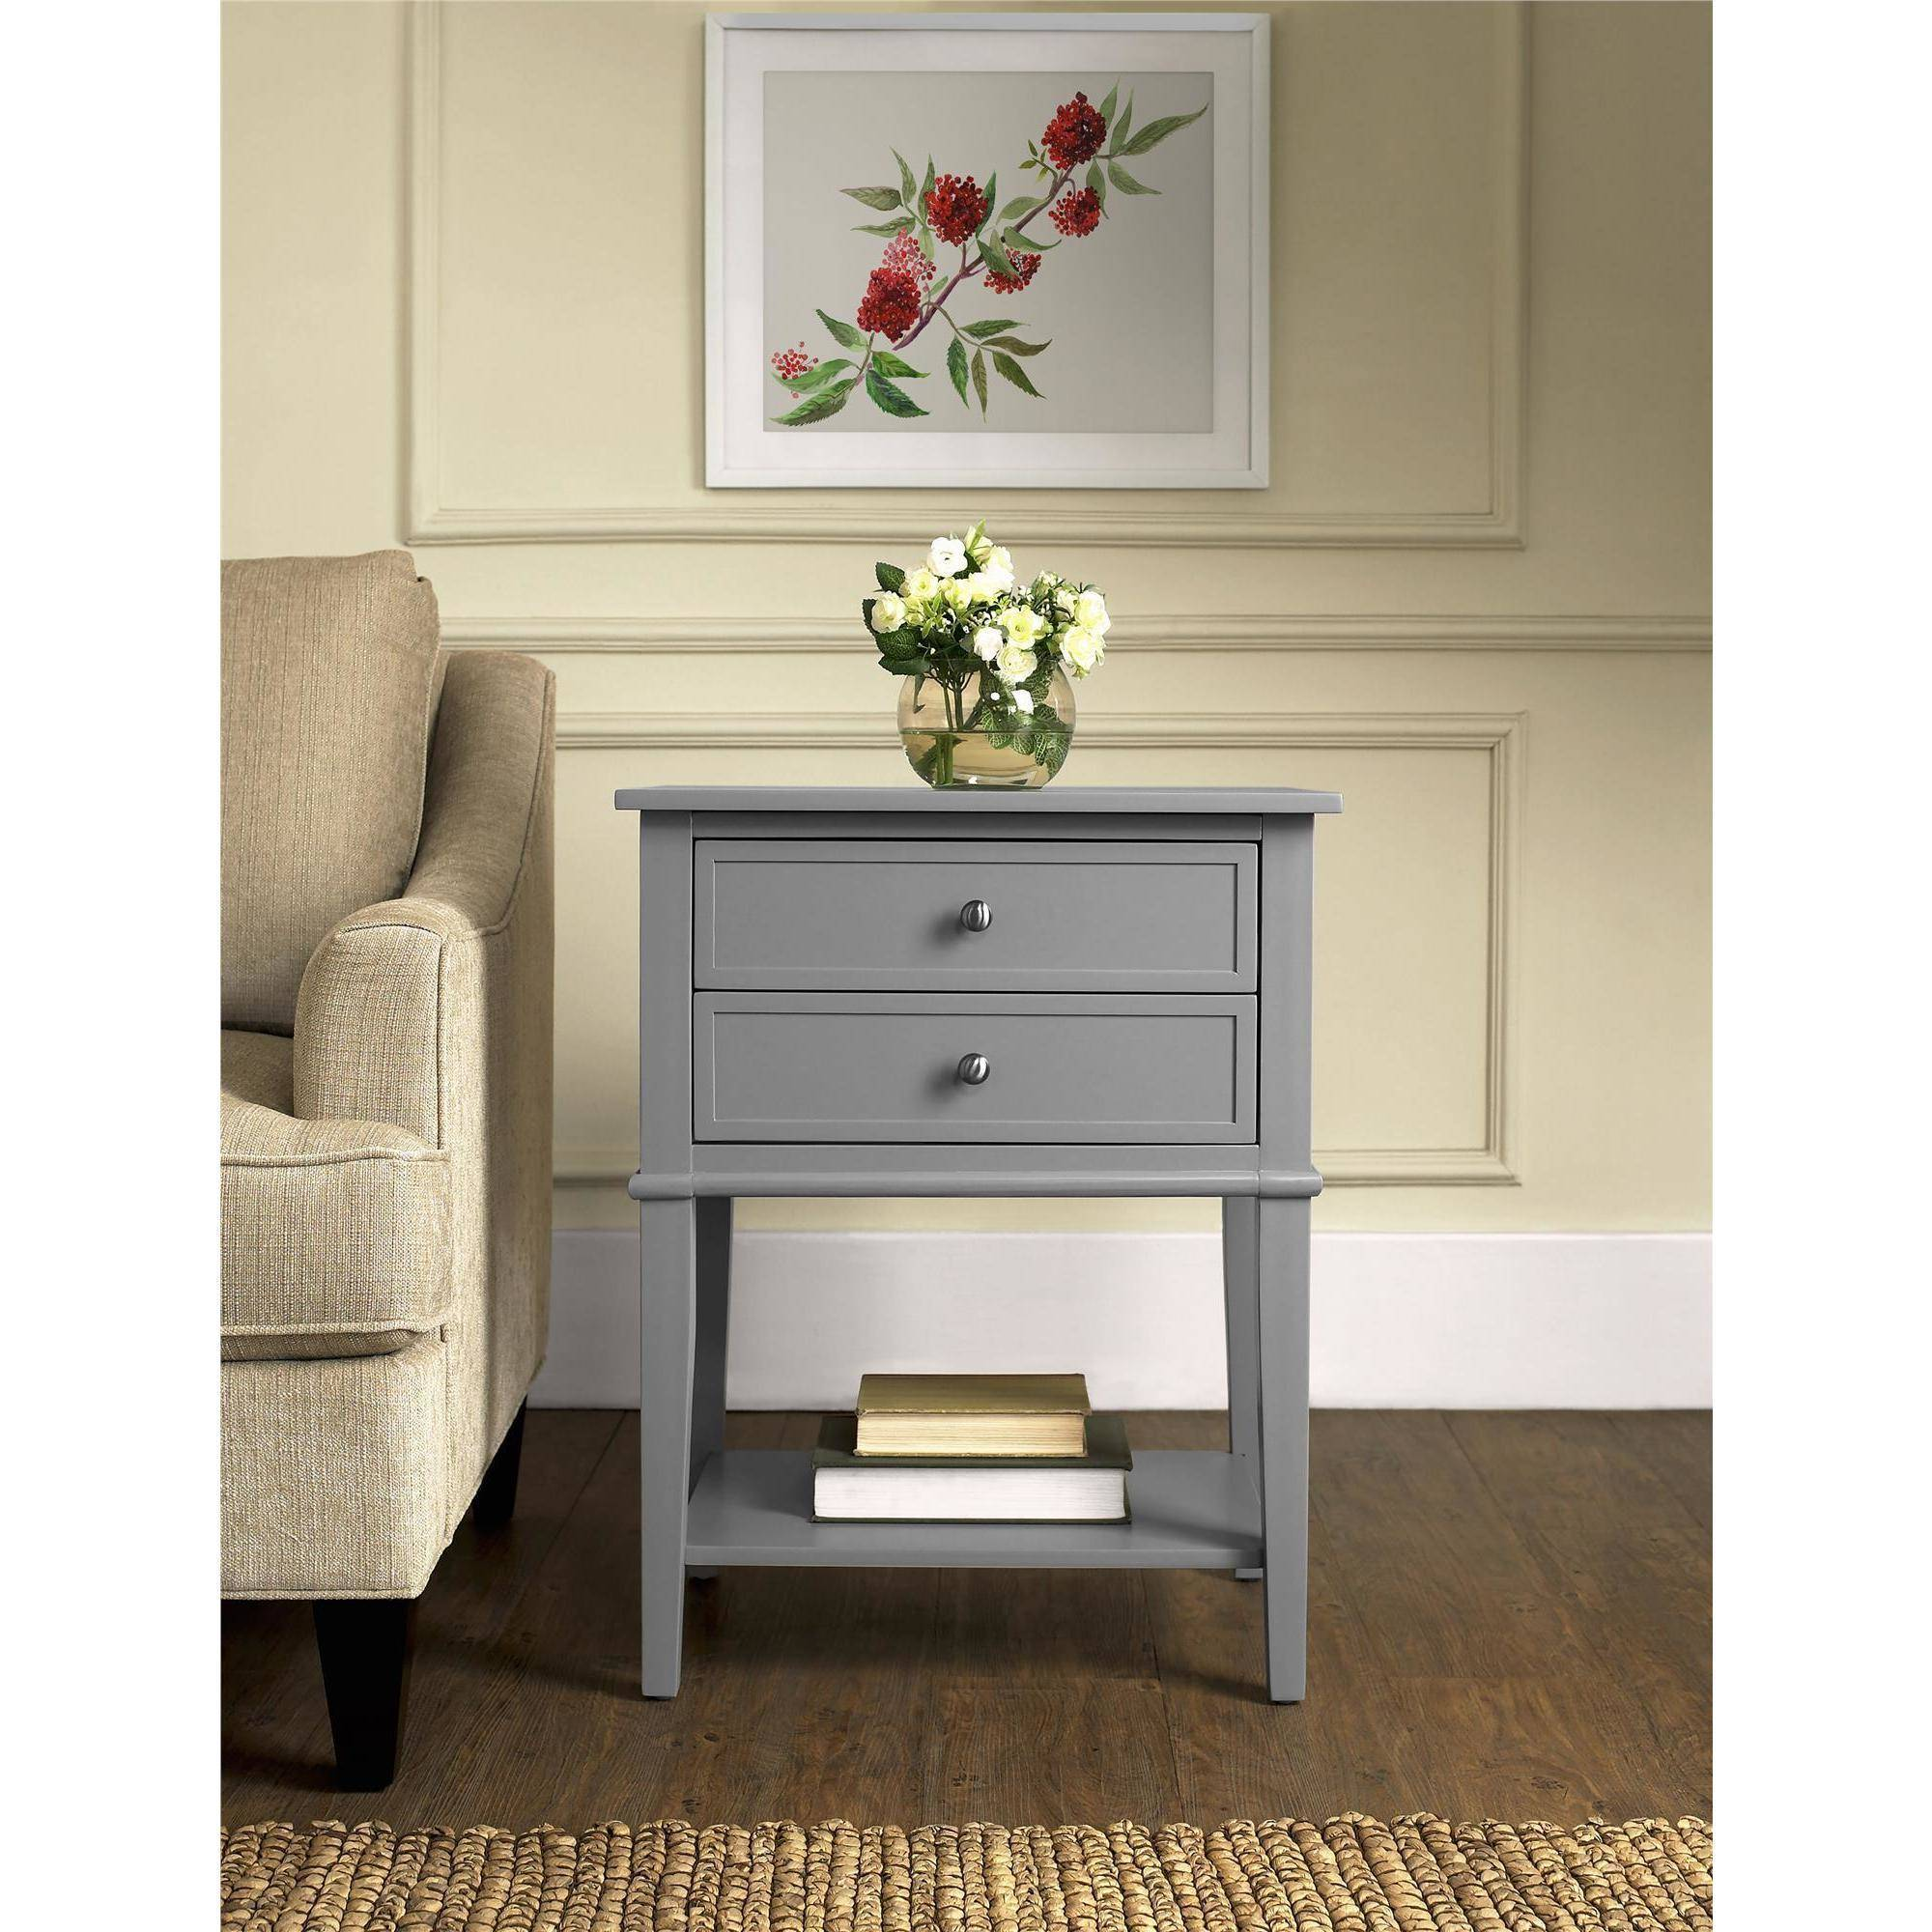 carly wpower chairside main power table wood broyhill scenic pike inspiring metal accent full size furniture good looking tile top coffee ashley ikea slim bedside target patio